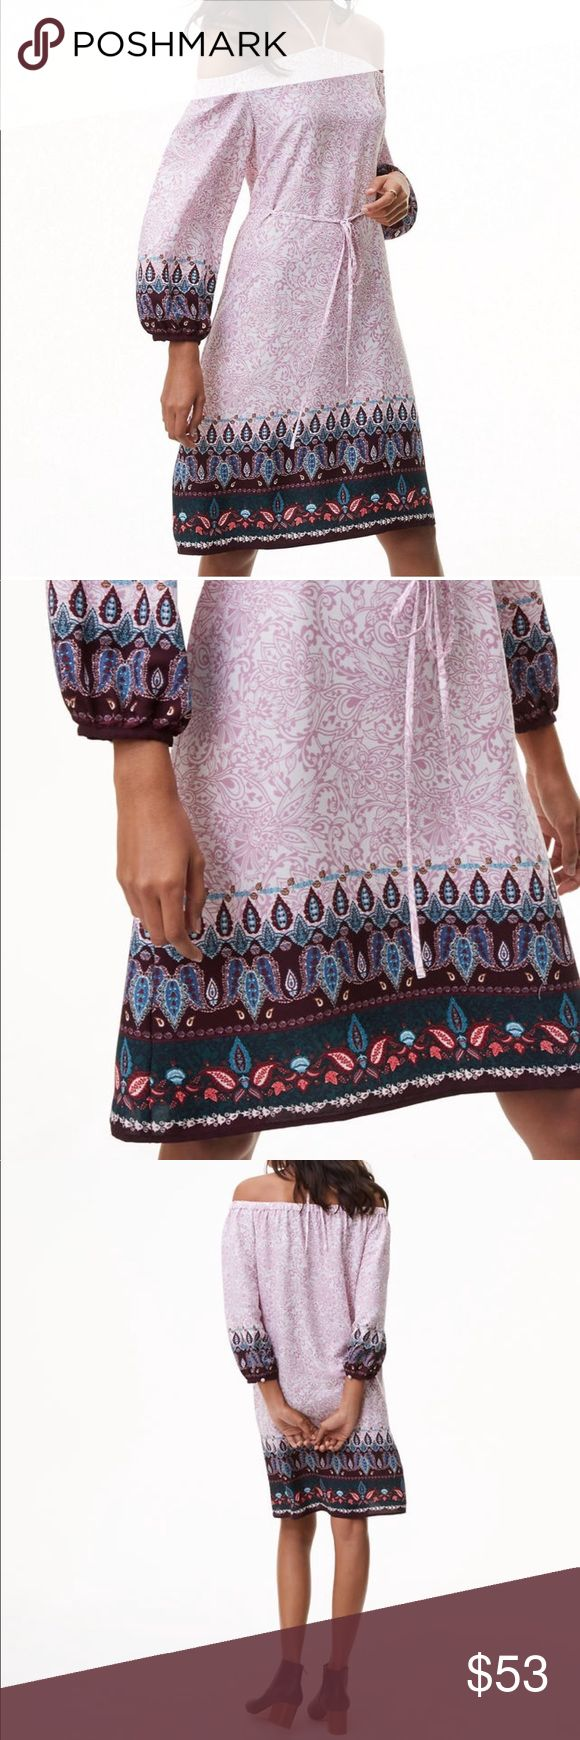 "LOFT💜Vine Paisley Off Shoulder Halter Dress 💜Bohemian styling💜Gorgeous all-over lavender paisley print💜Accented with plum, forest green & muted teal at cuffs & hem💜Elasticized off-shoulder neckline with halter ties💜3/4 blouson sleeves with elasticized cuffs💜Removable waist tie💜20"" Length from waist LOFT Dresses"